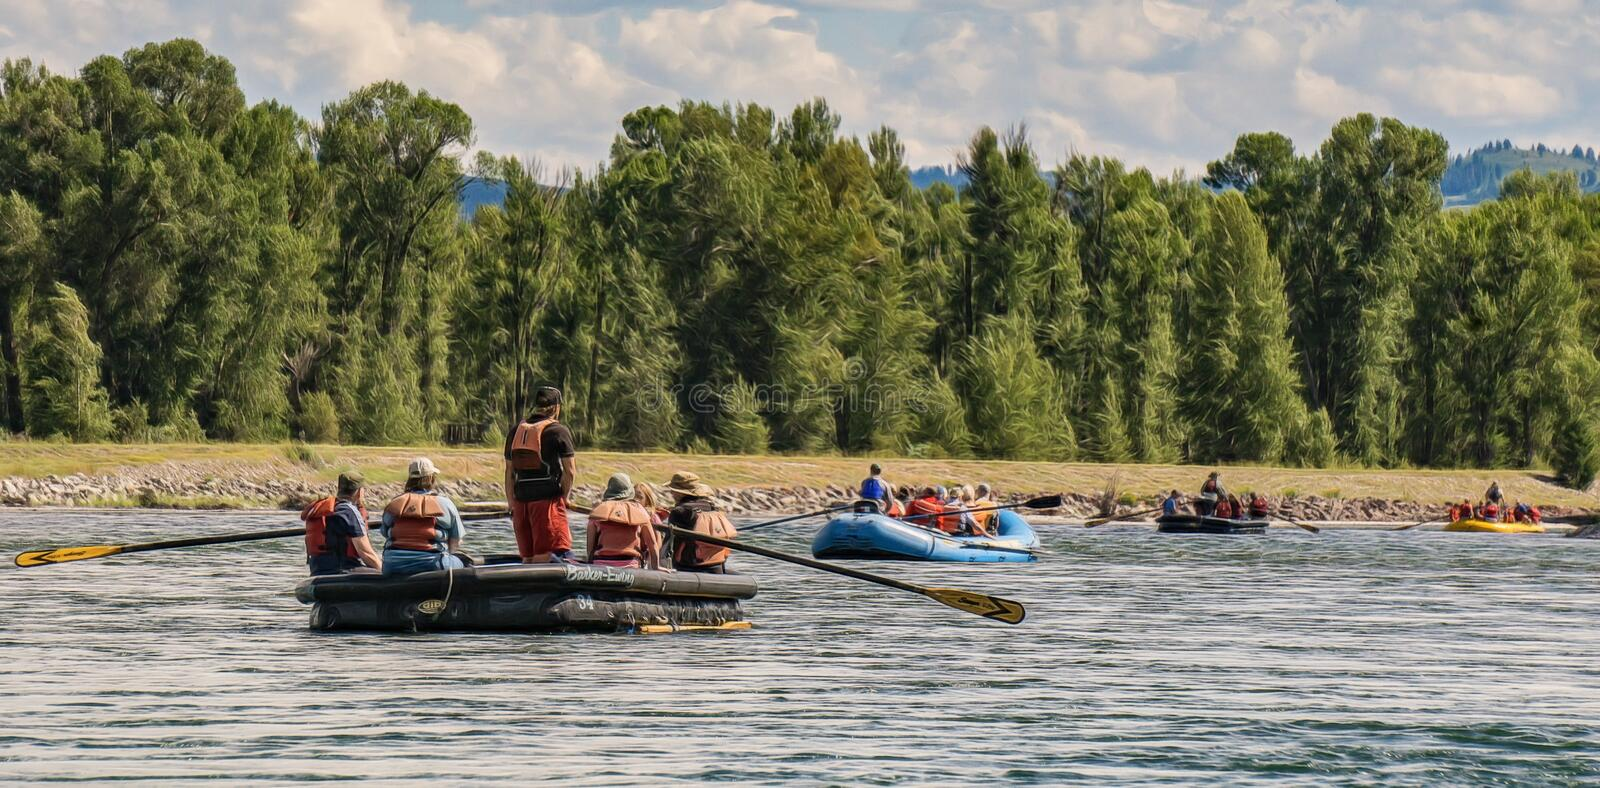 Rafting in Jackson Hole, Wyoming royalty free stock photos